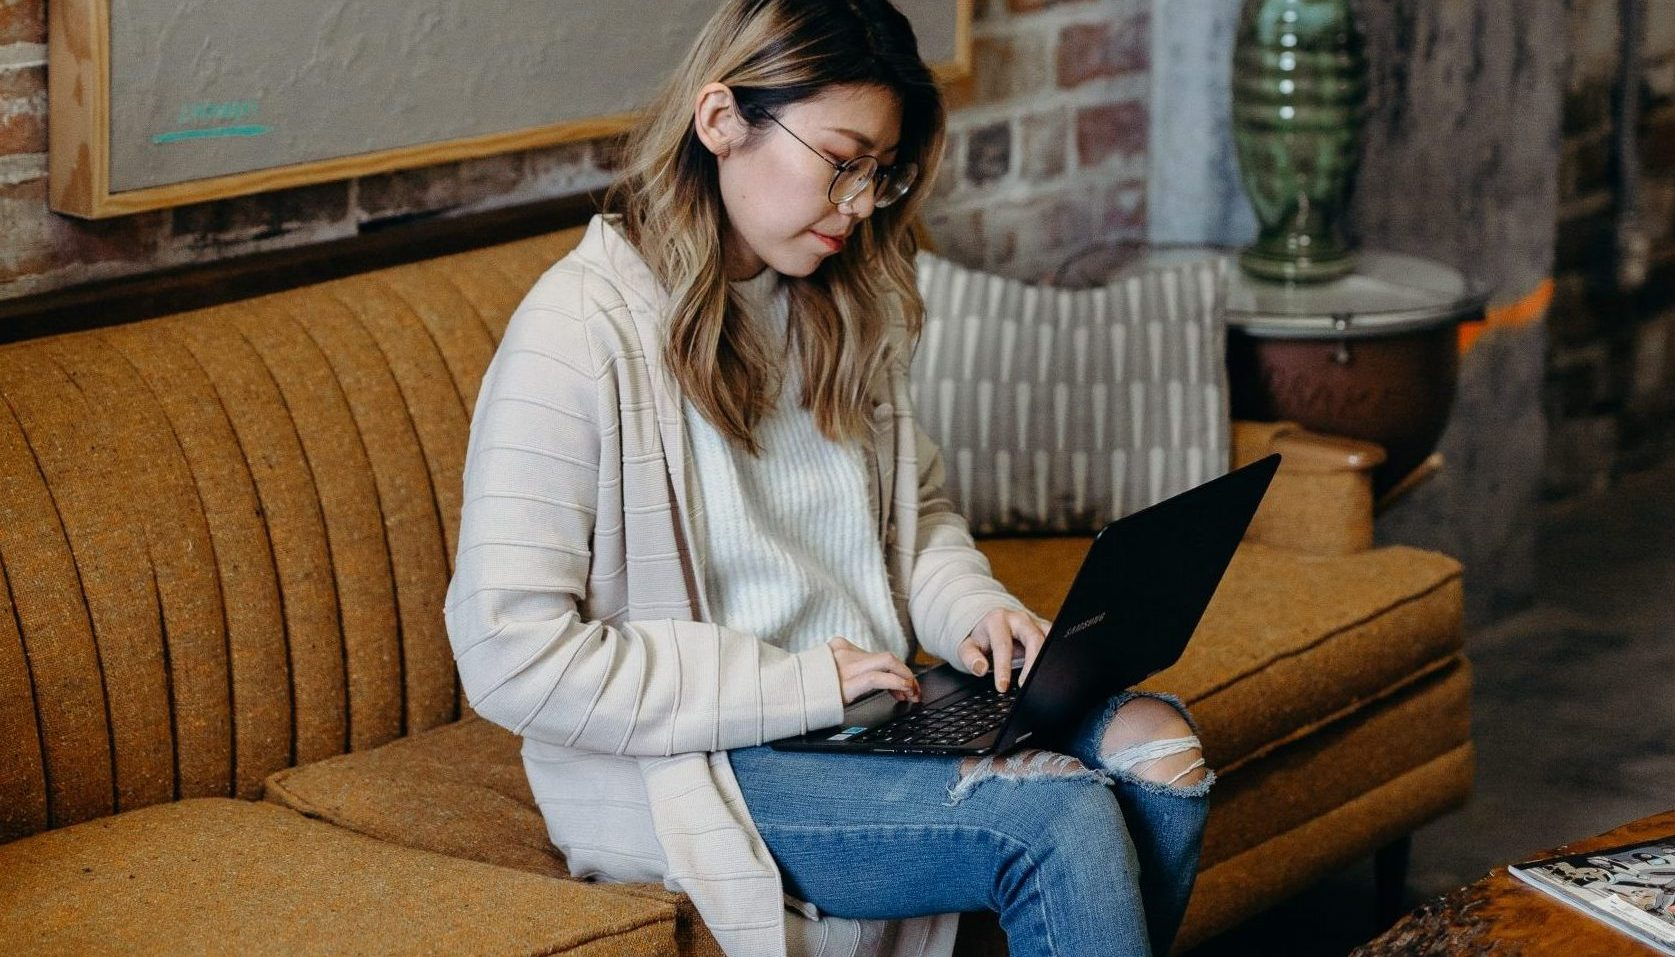 person sitting on couch in her living room on her computer practicing social distancing